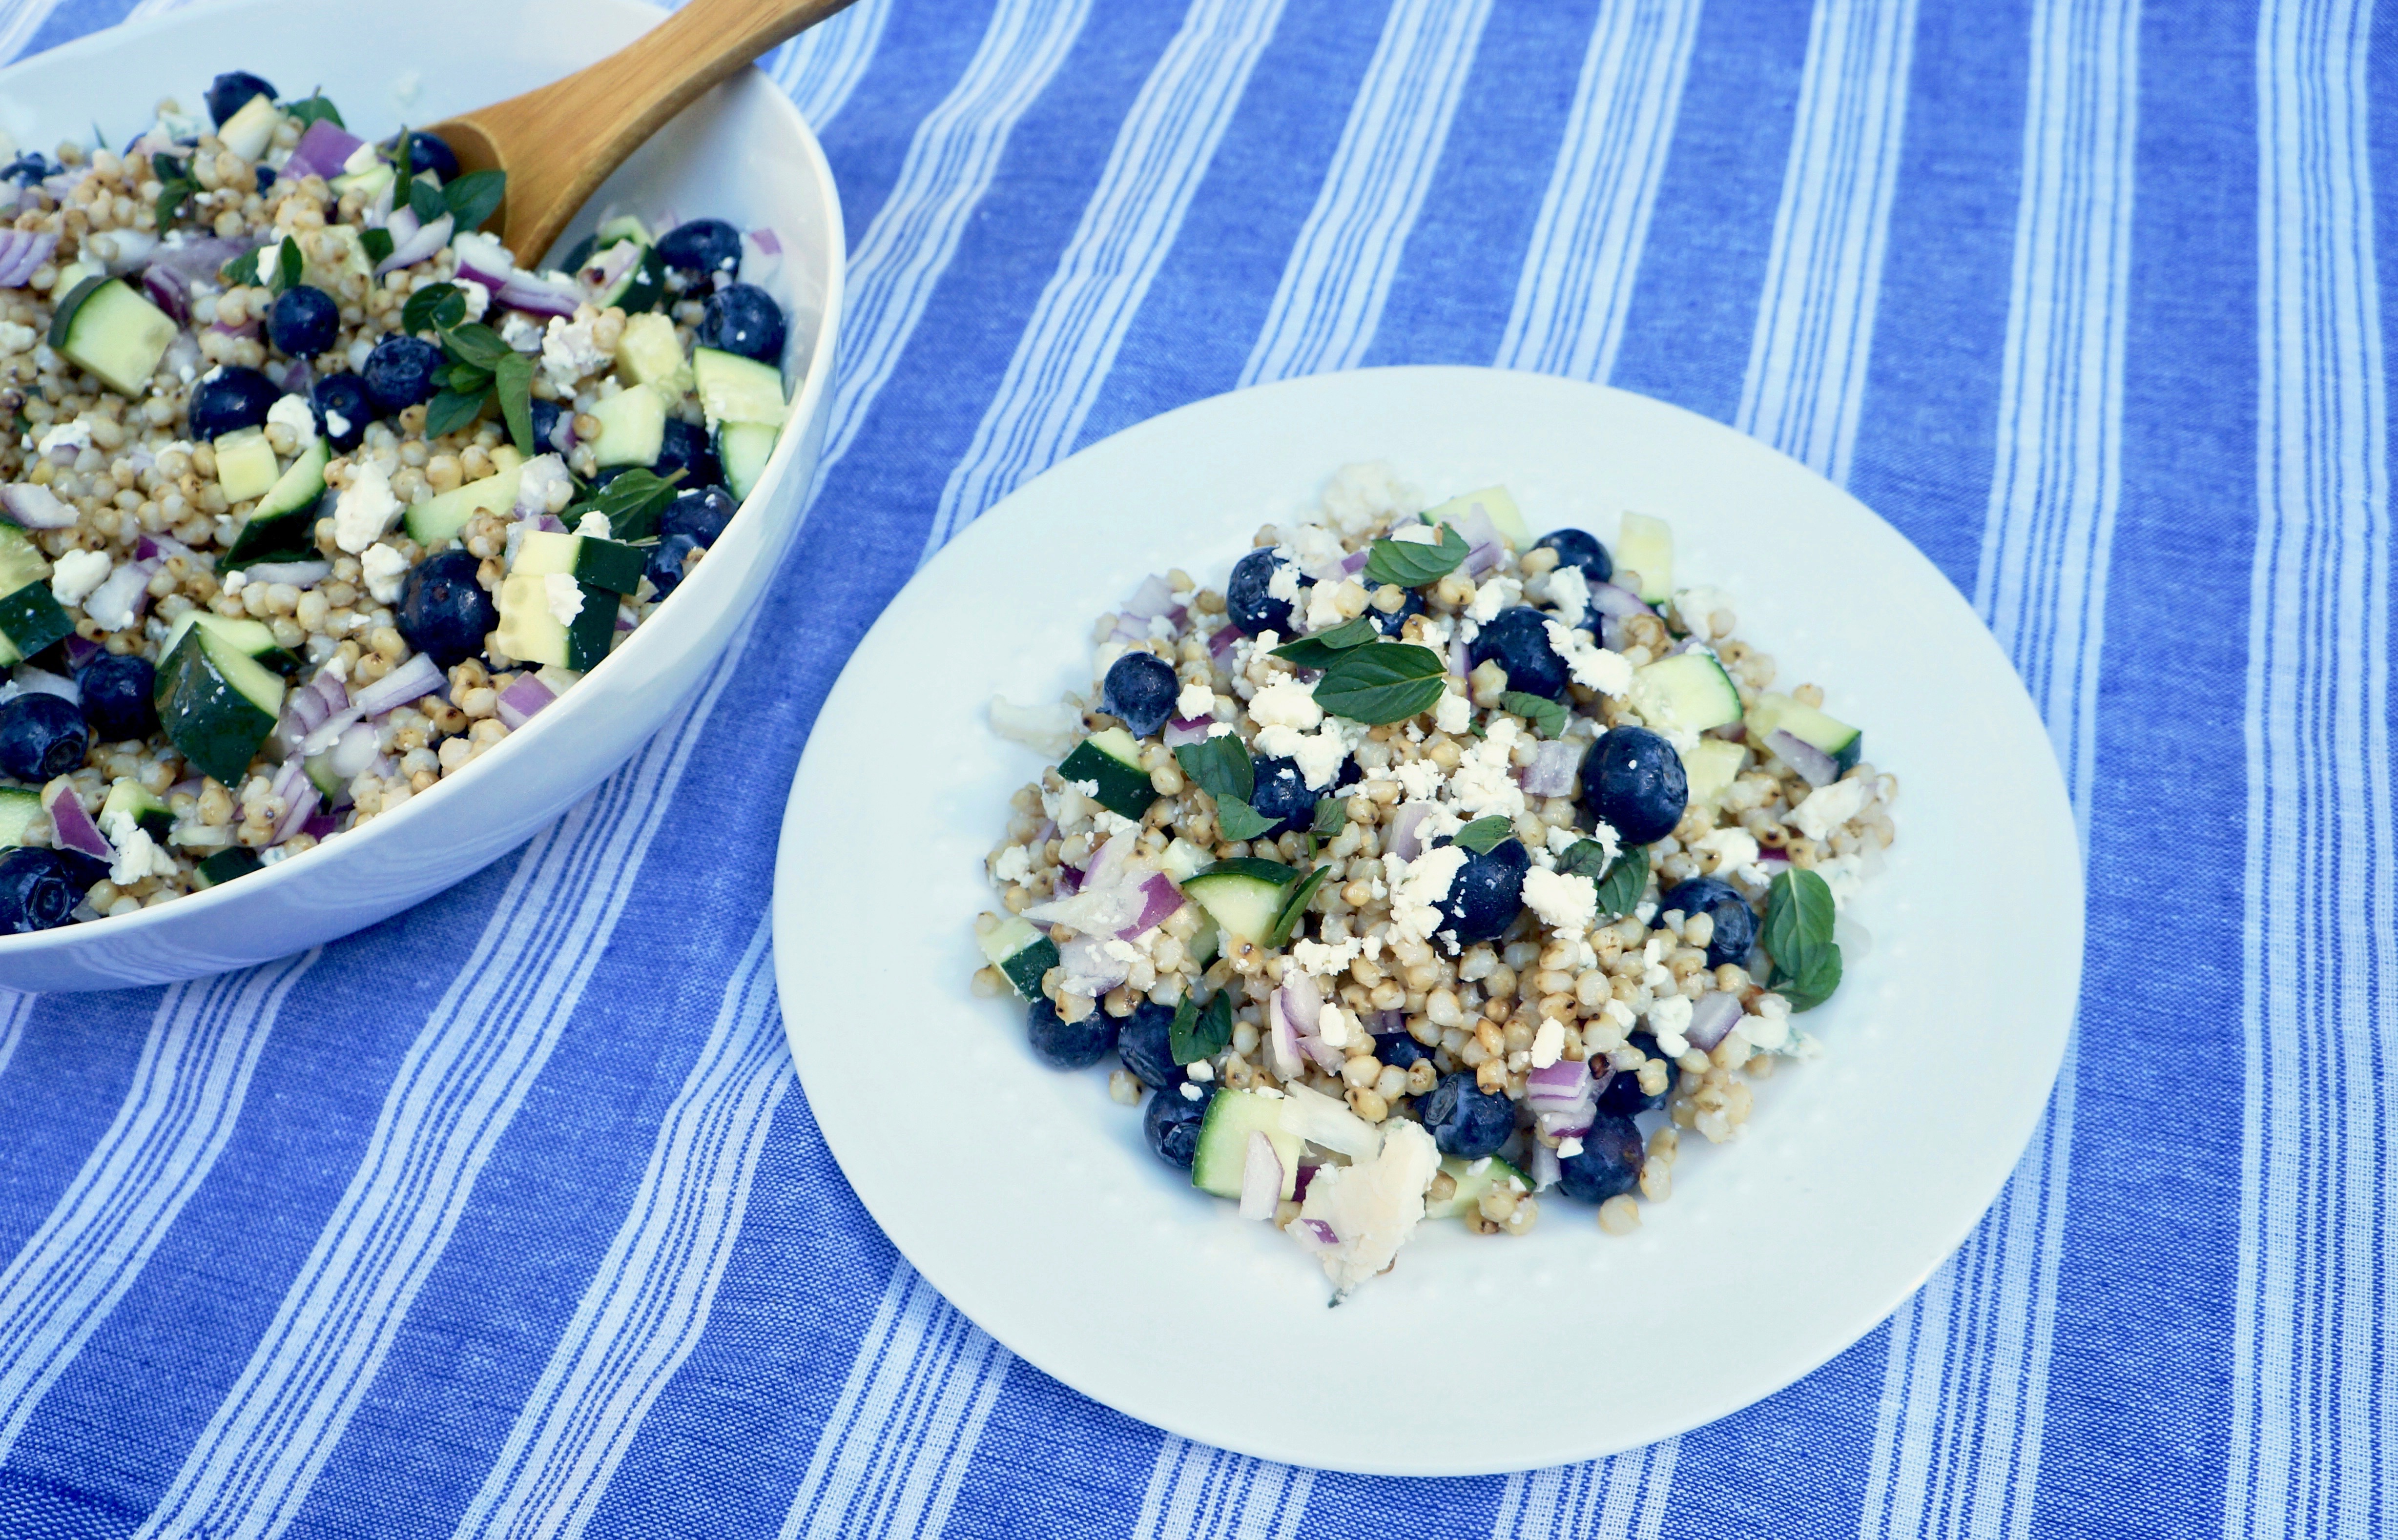 sorghum & blues salad with blueberries and blue cheese